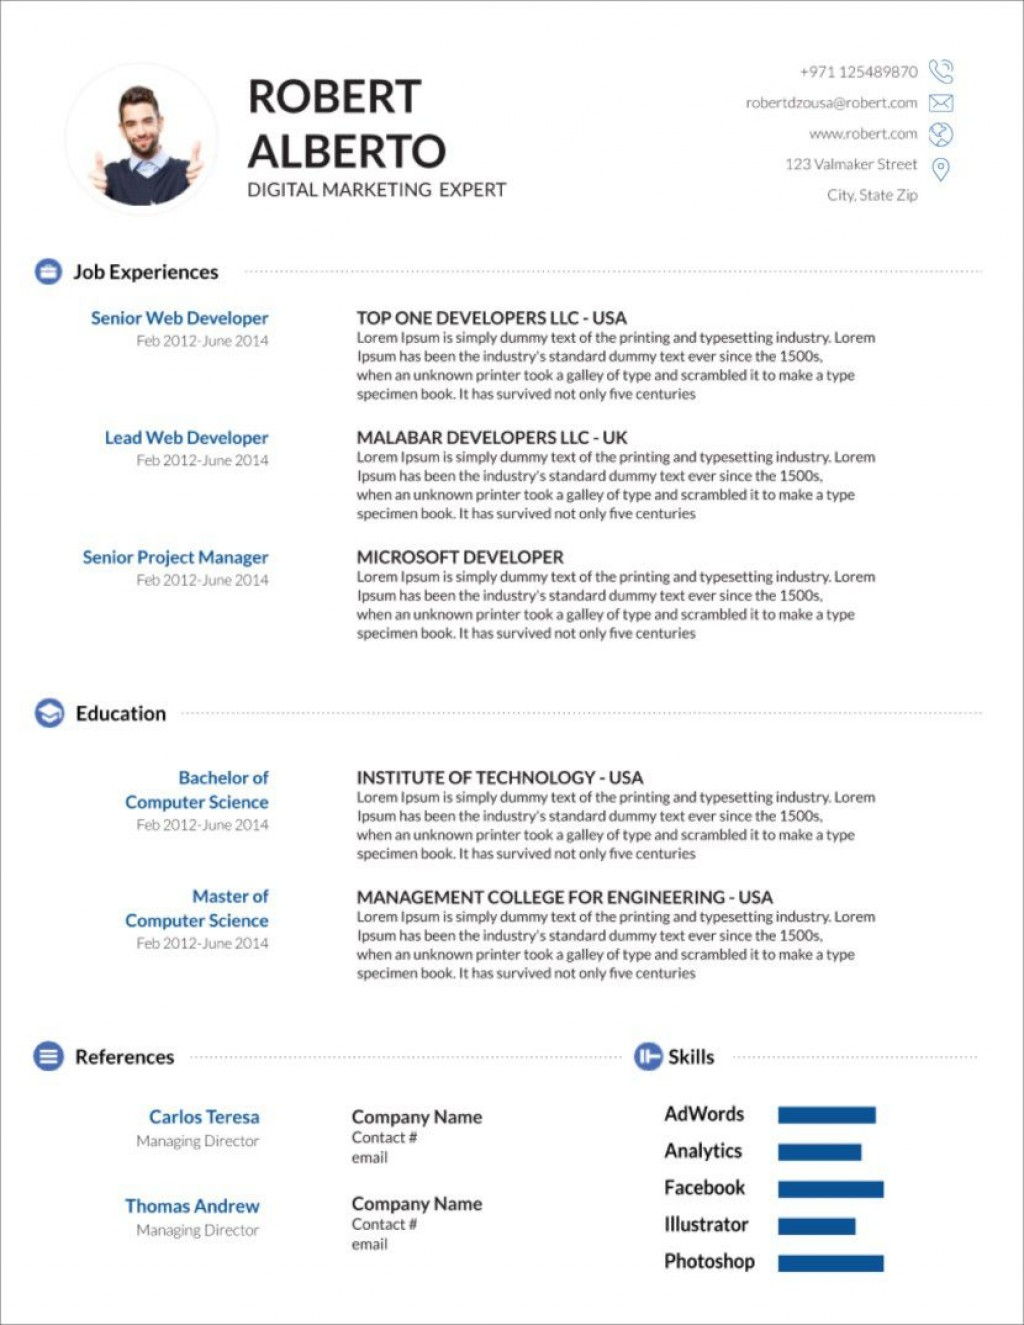 006 Amazing Curriculum Vitae Template Free Image  Sample Pdf Download For Student DocLarge